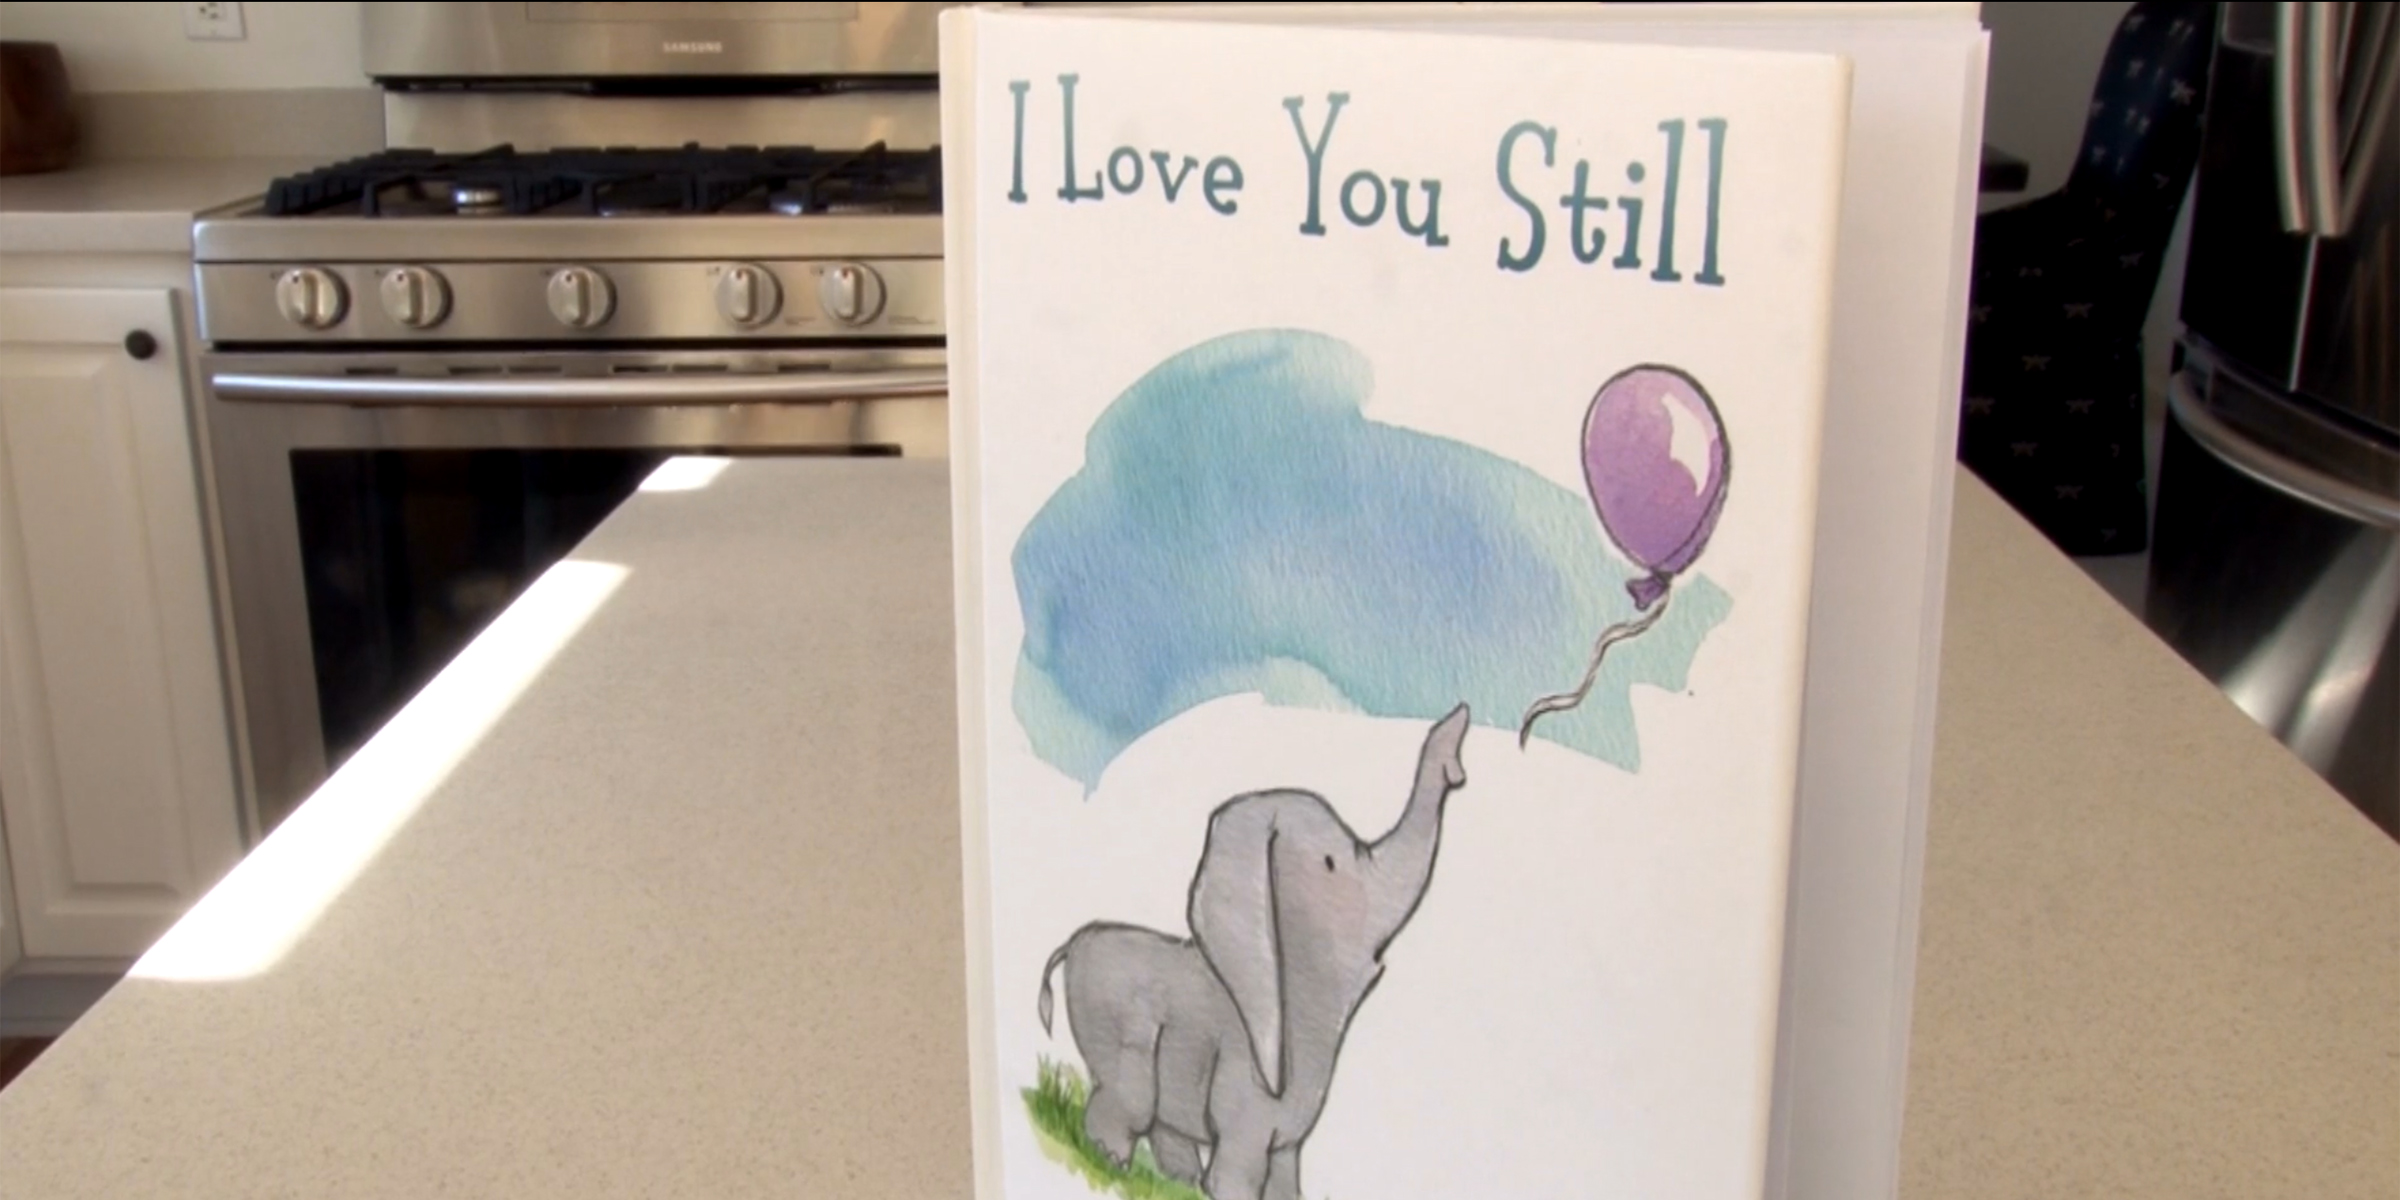 Woman creates special baby book for her friend after a miscarriage